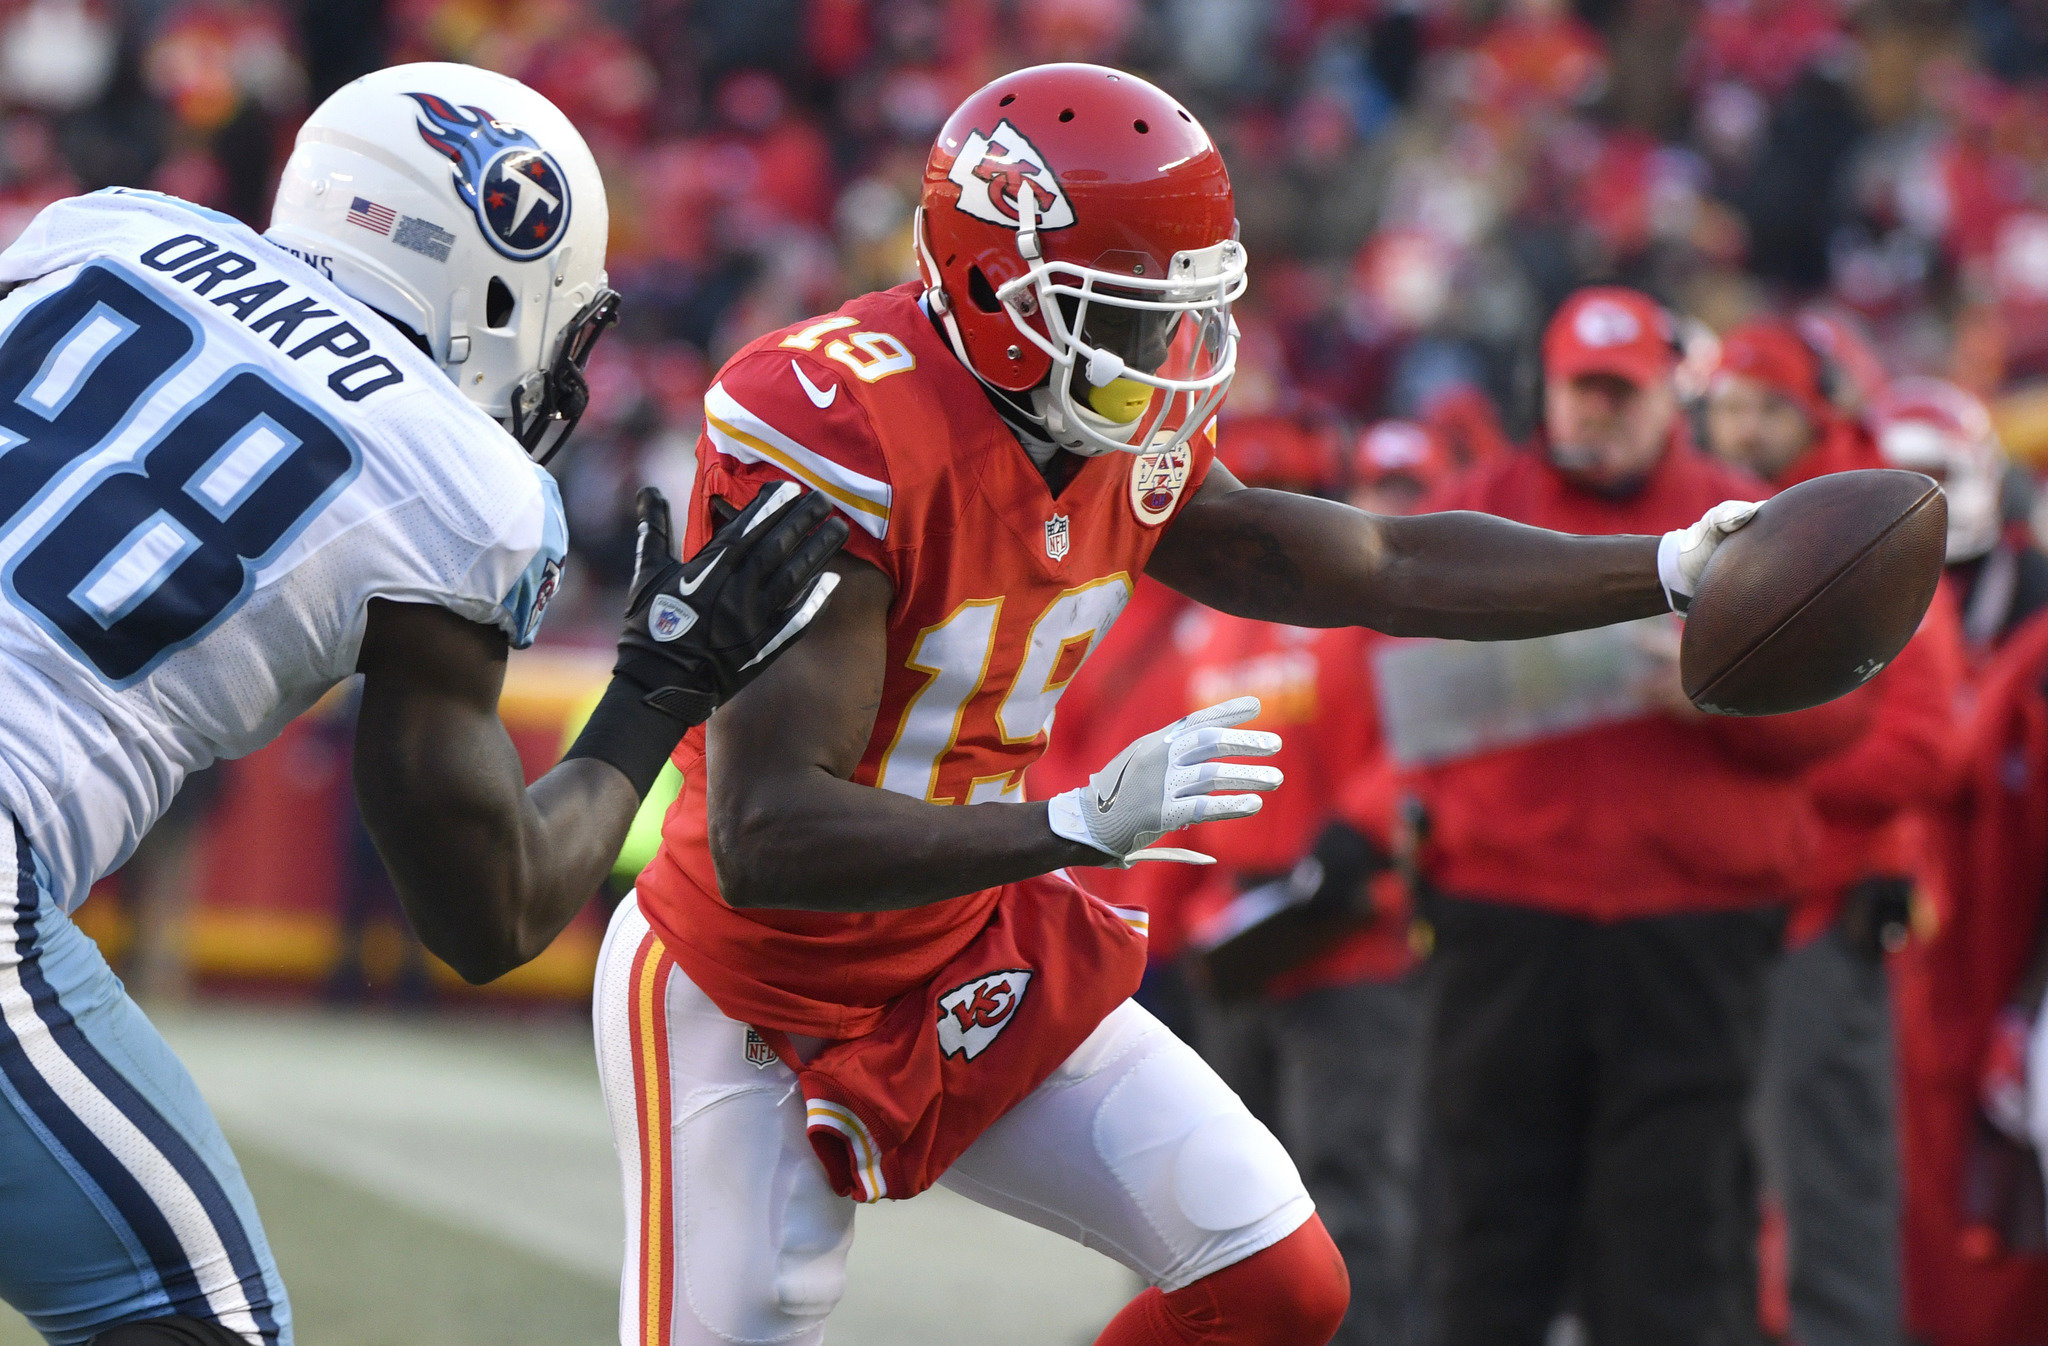 No Deal For Maclin After Ravens Visit